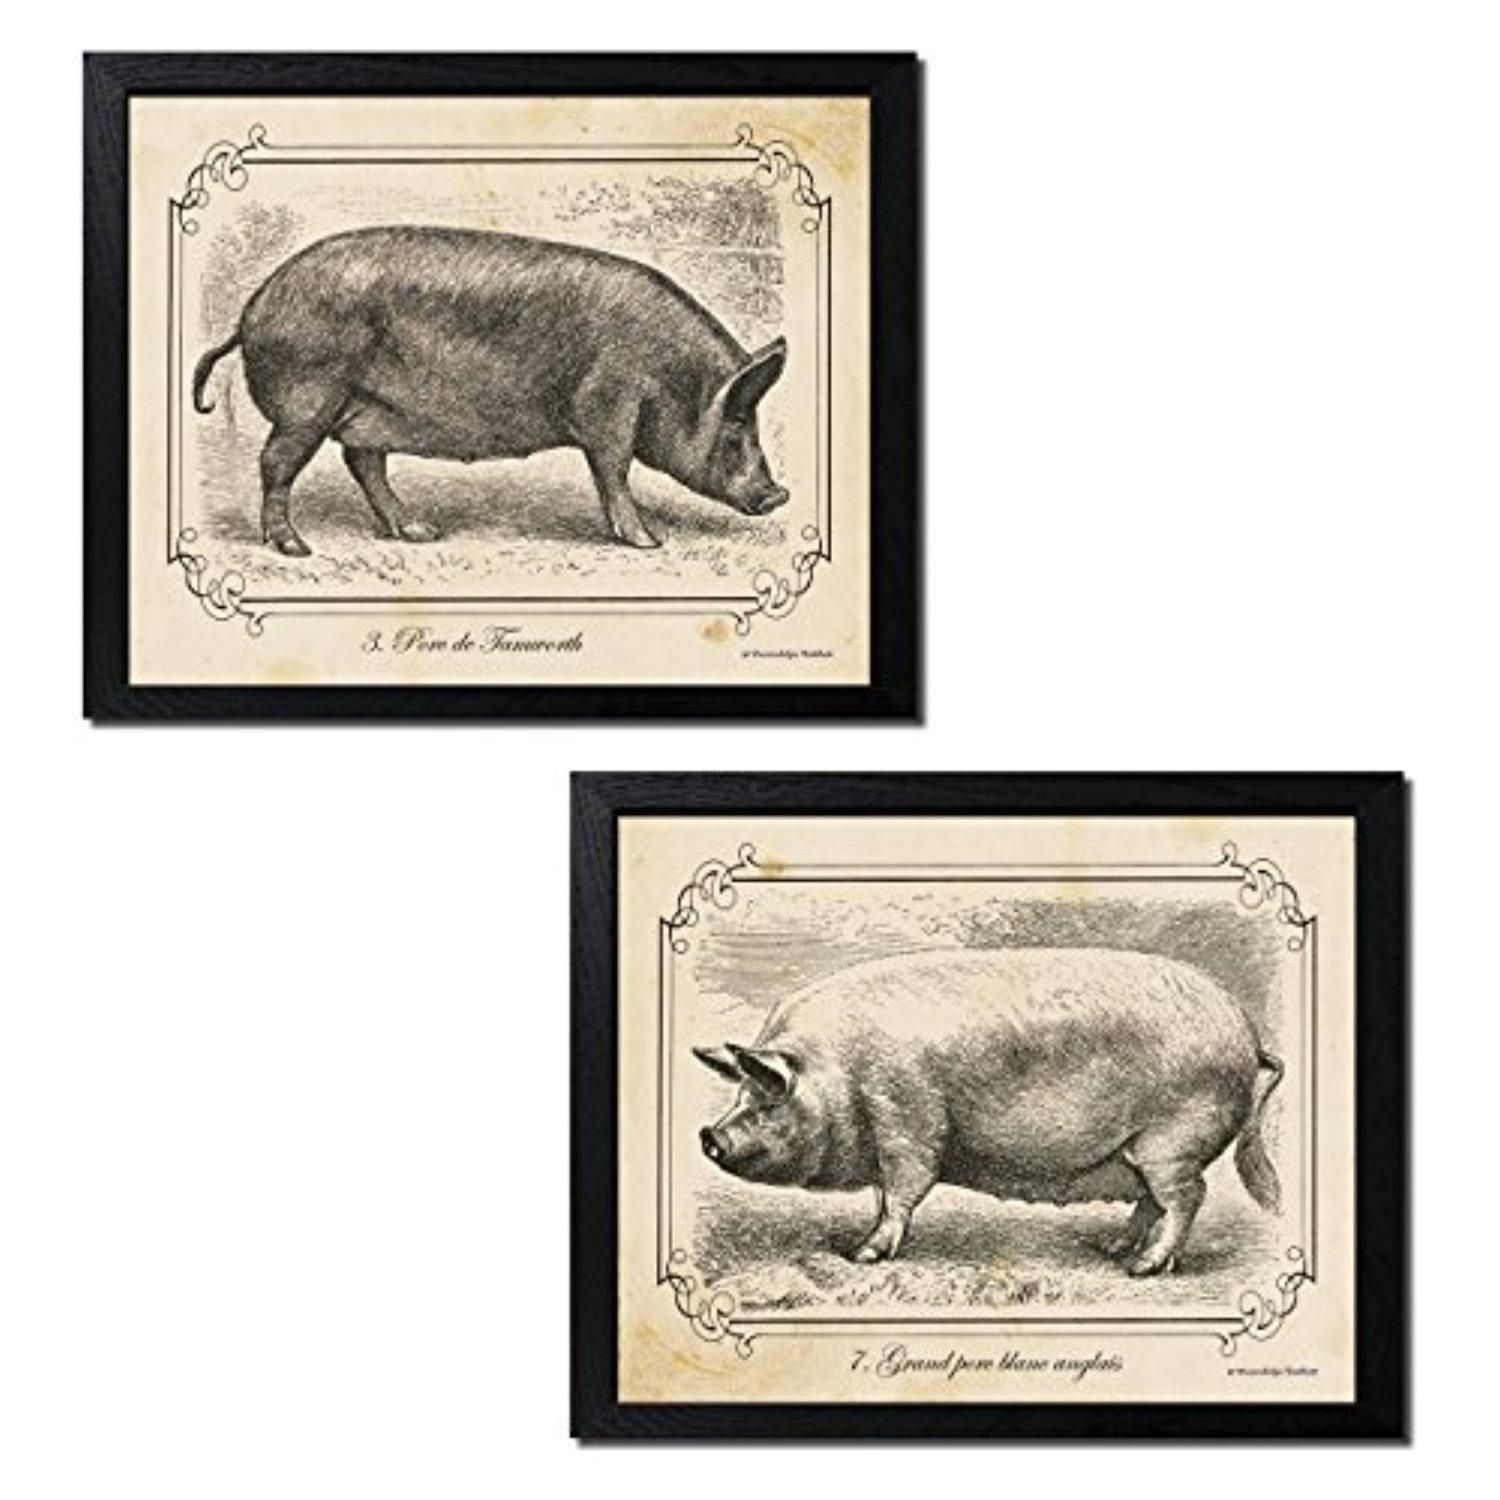 2 Black and White Pig Drawings Grayscale Vintage Farm Animals ...